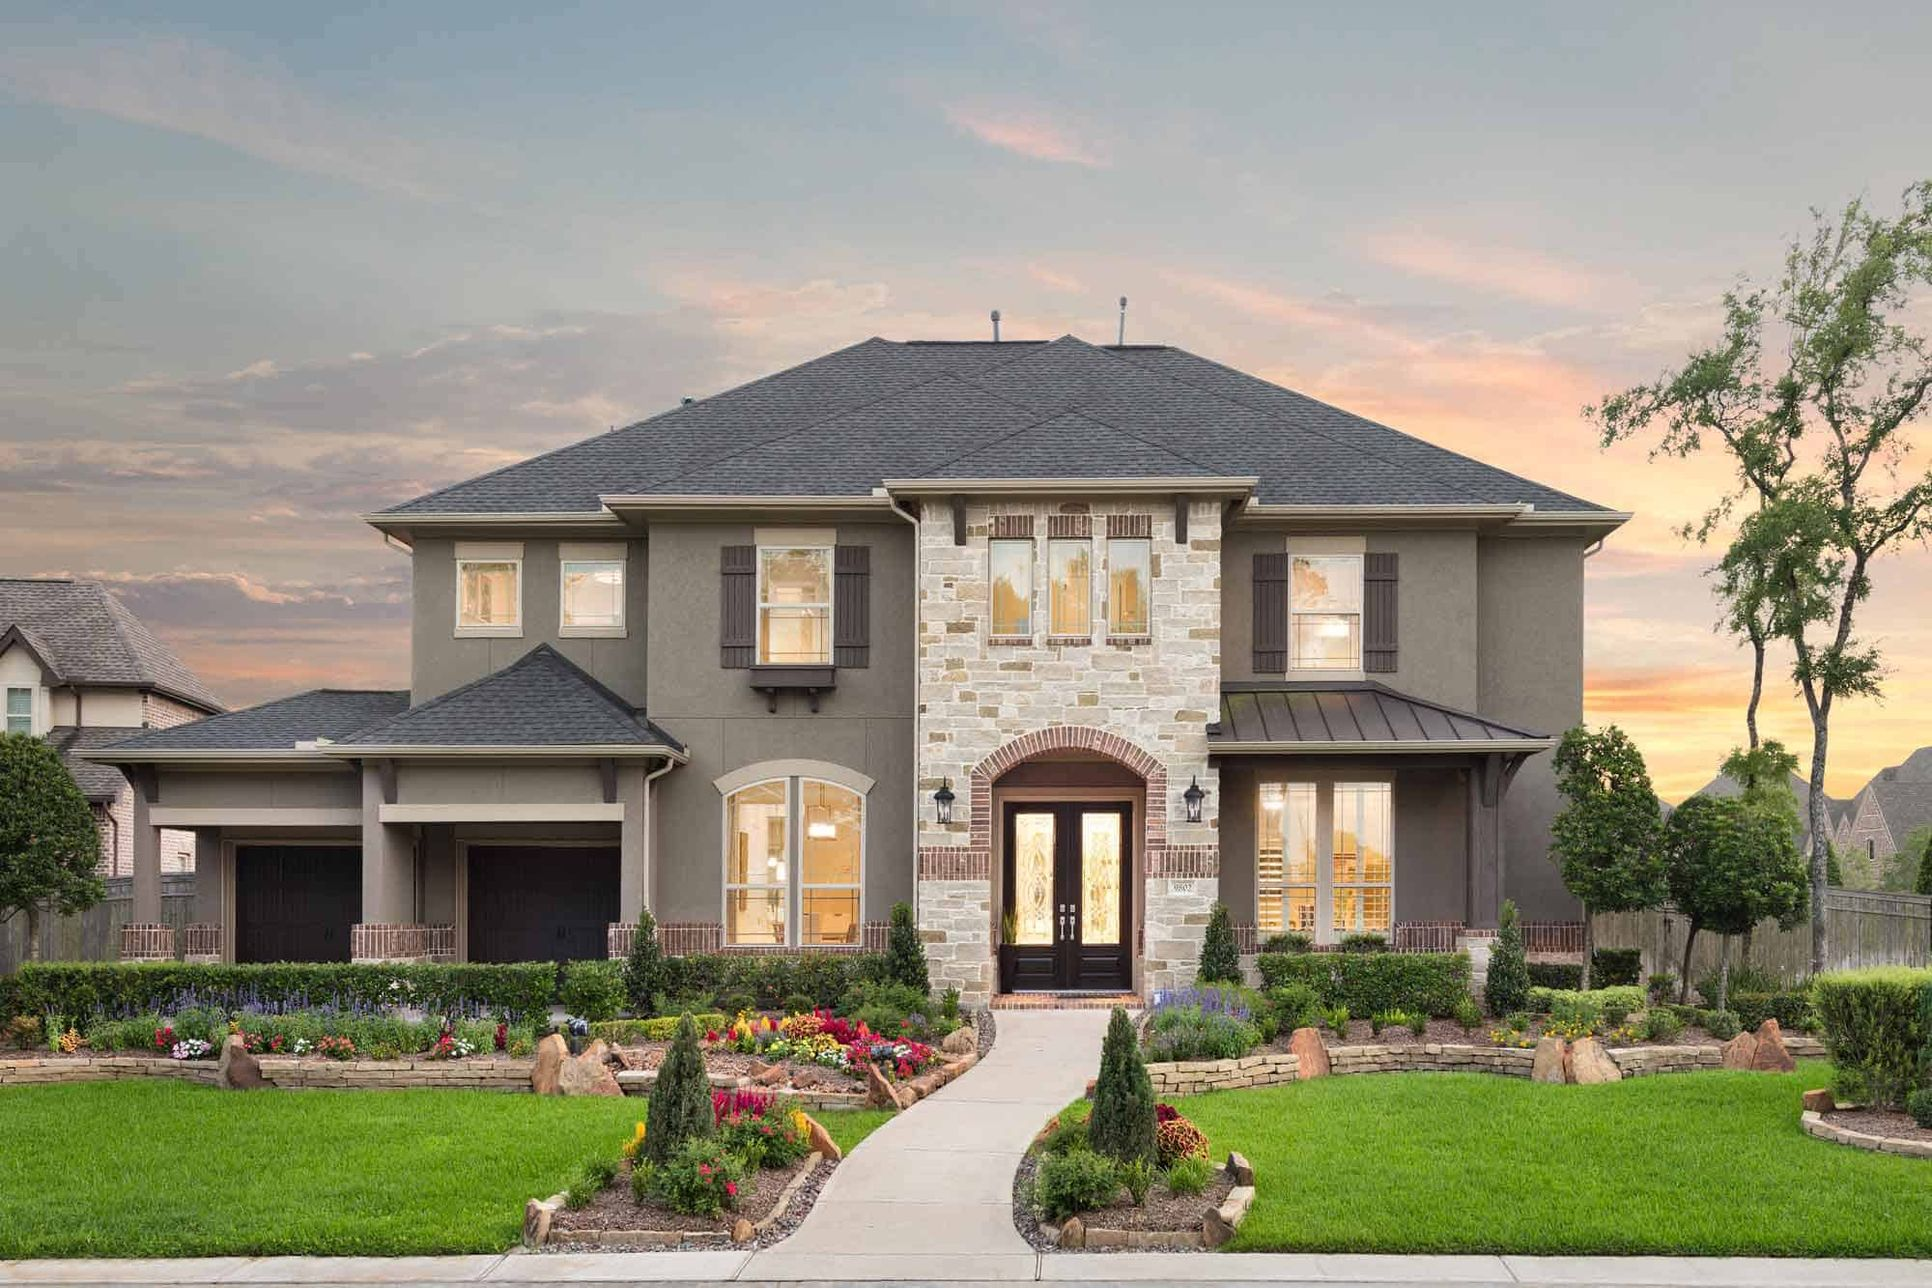 TMH-residence-Trendmaker-9802-Maroon-Peak-Missoury:Representative Only | Lucca Model Plan | Elevation U